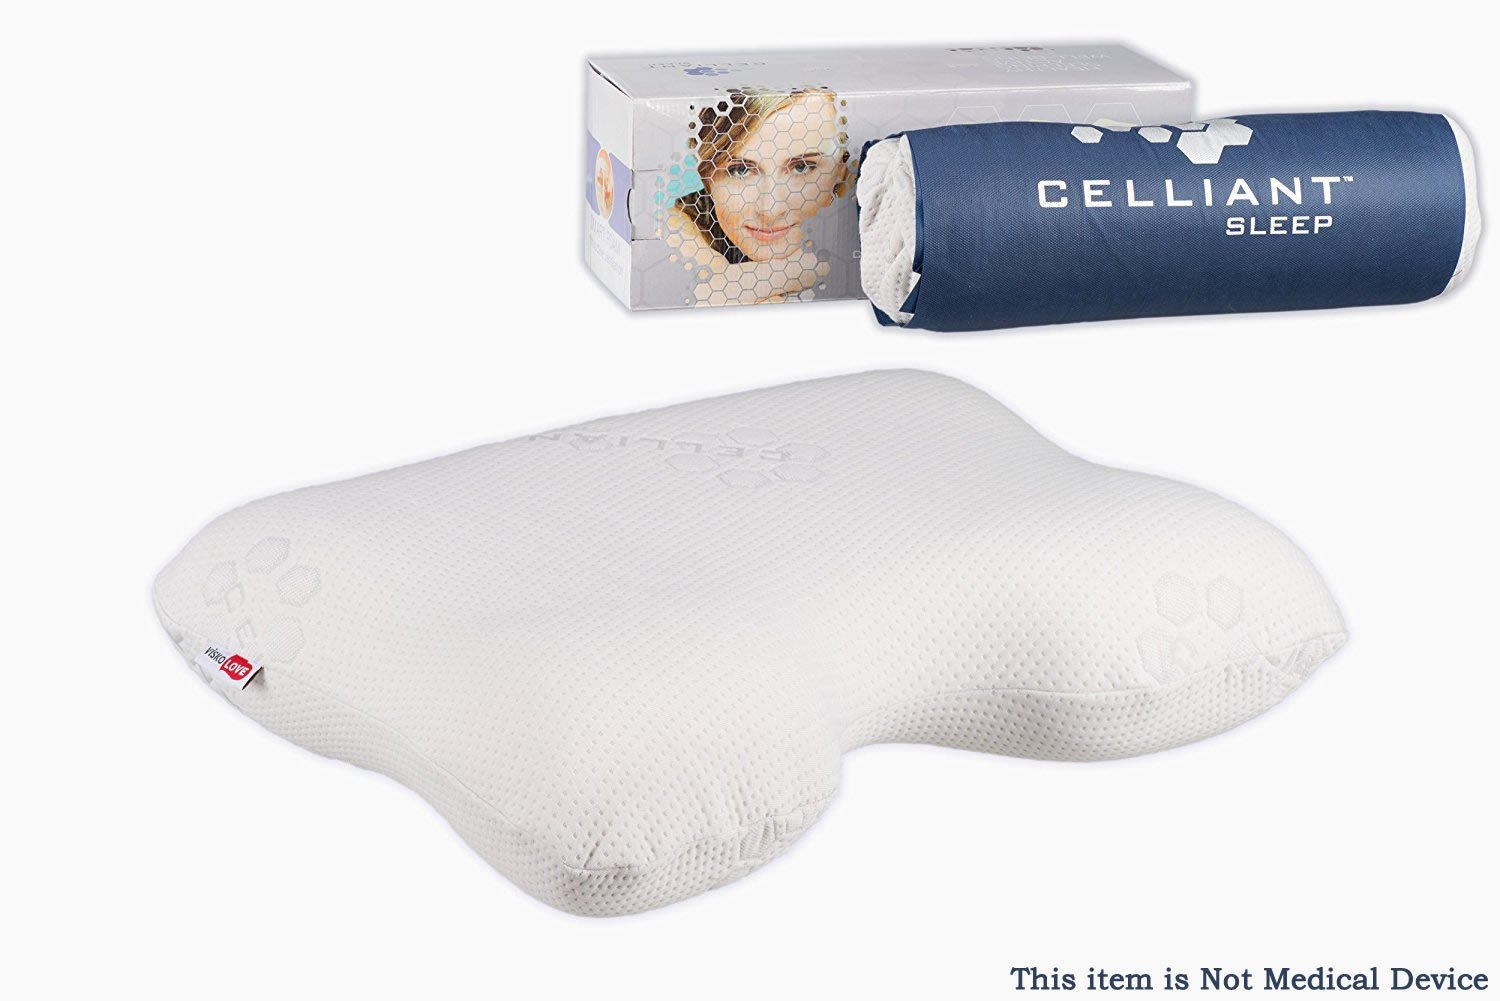 VISCO LOVE Celliant Sleep Orthopedic Wellness Cervical Neck with Ergonomic Contoured Head Memory Foam Pillow by US LLC.